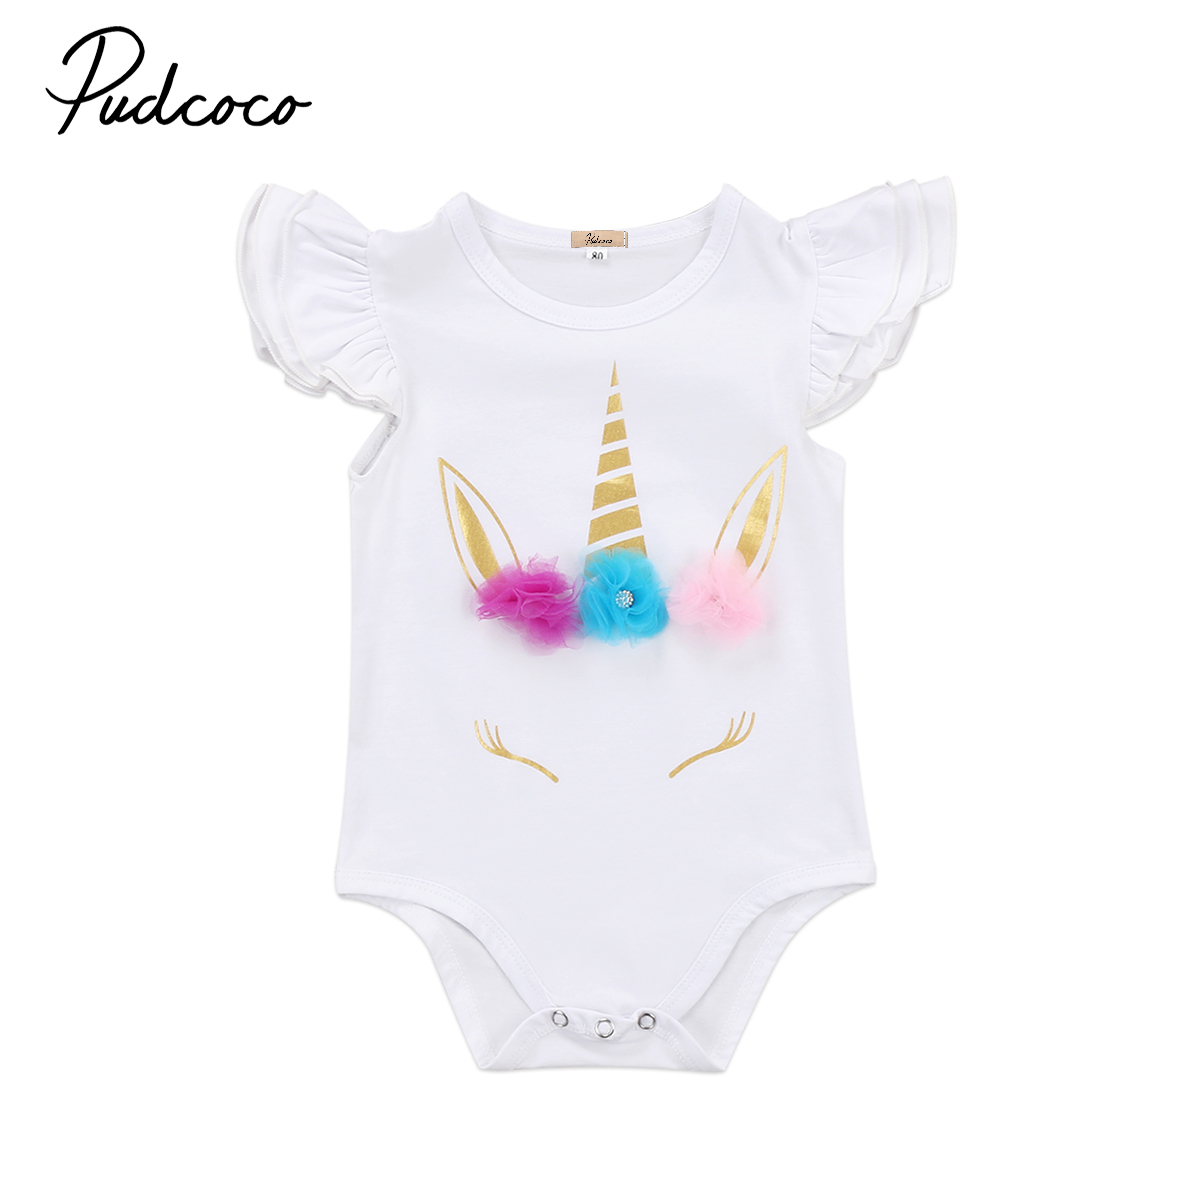 74872702d0fd Unicorn Infant Baby Girls Romper Floral Ruffle Playysuit Sunsuit Summer  Autumn Infant Newborn Girls Clothes Outfits-in Rompers from Mother   Kids  on ...